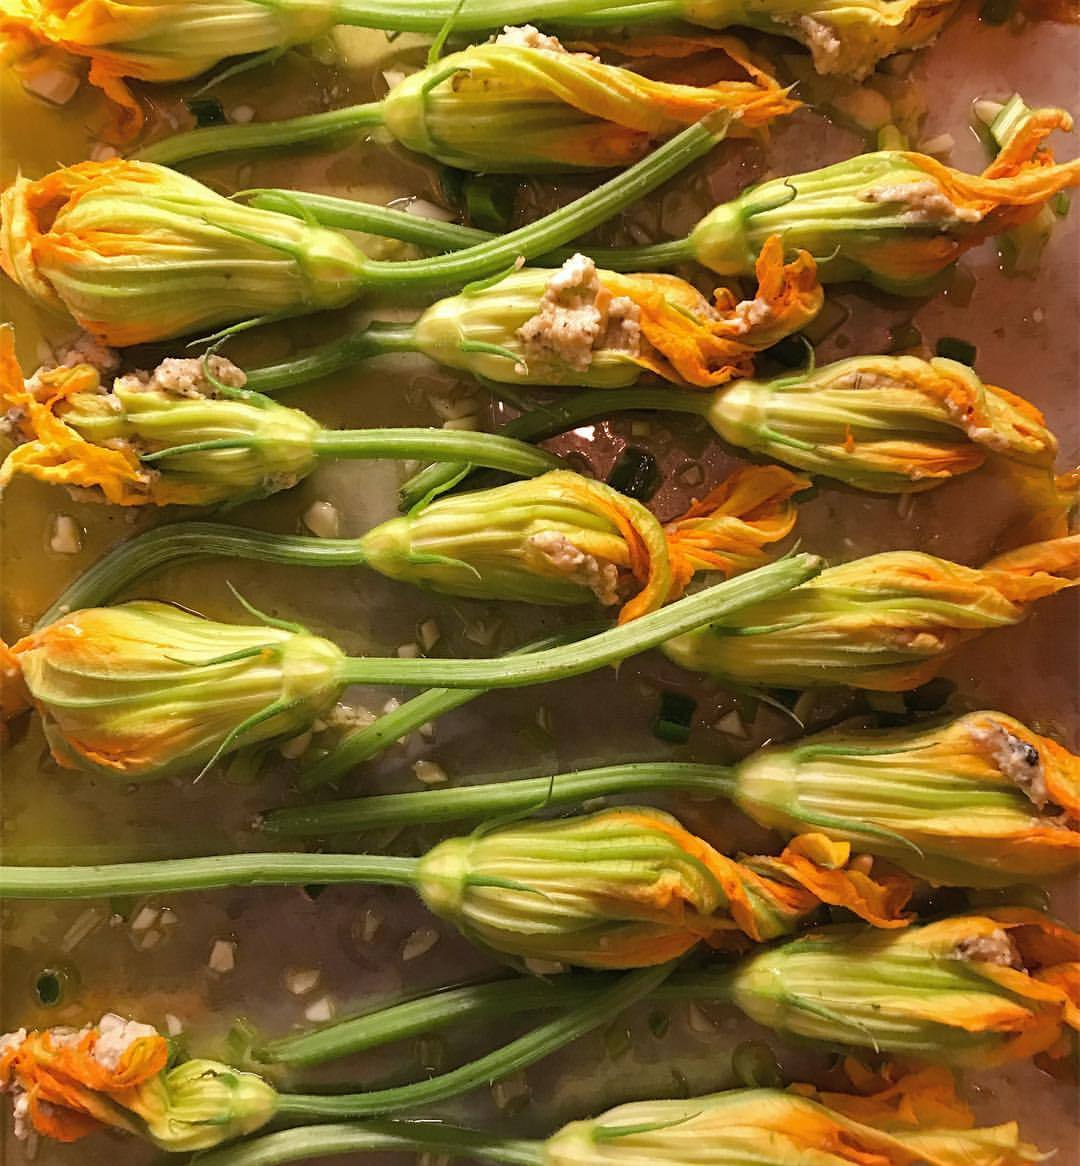 Squash blossoms, the garden's first class envelope for flavor, overstuffed with sheep's milk ricotta, Sicilian pine nuts, eggs, fresh crumb and garden basil, oregano and parsley roasted on a bed of spicy spring garlic.    -  #dinner #gardenfood #keepingvampiresaway  (at At Home in Napa)